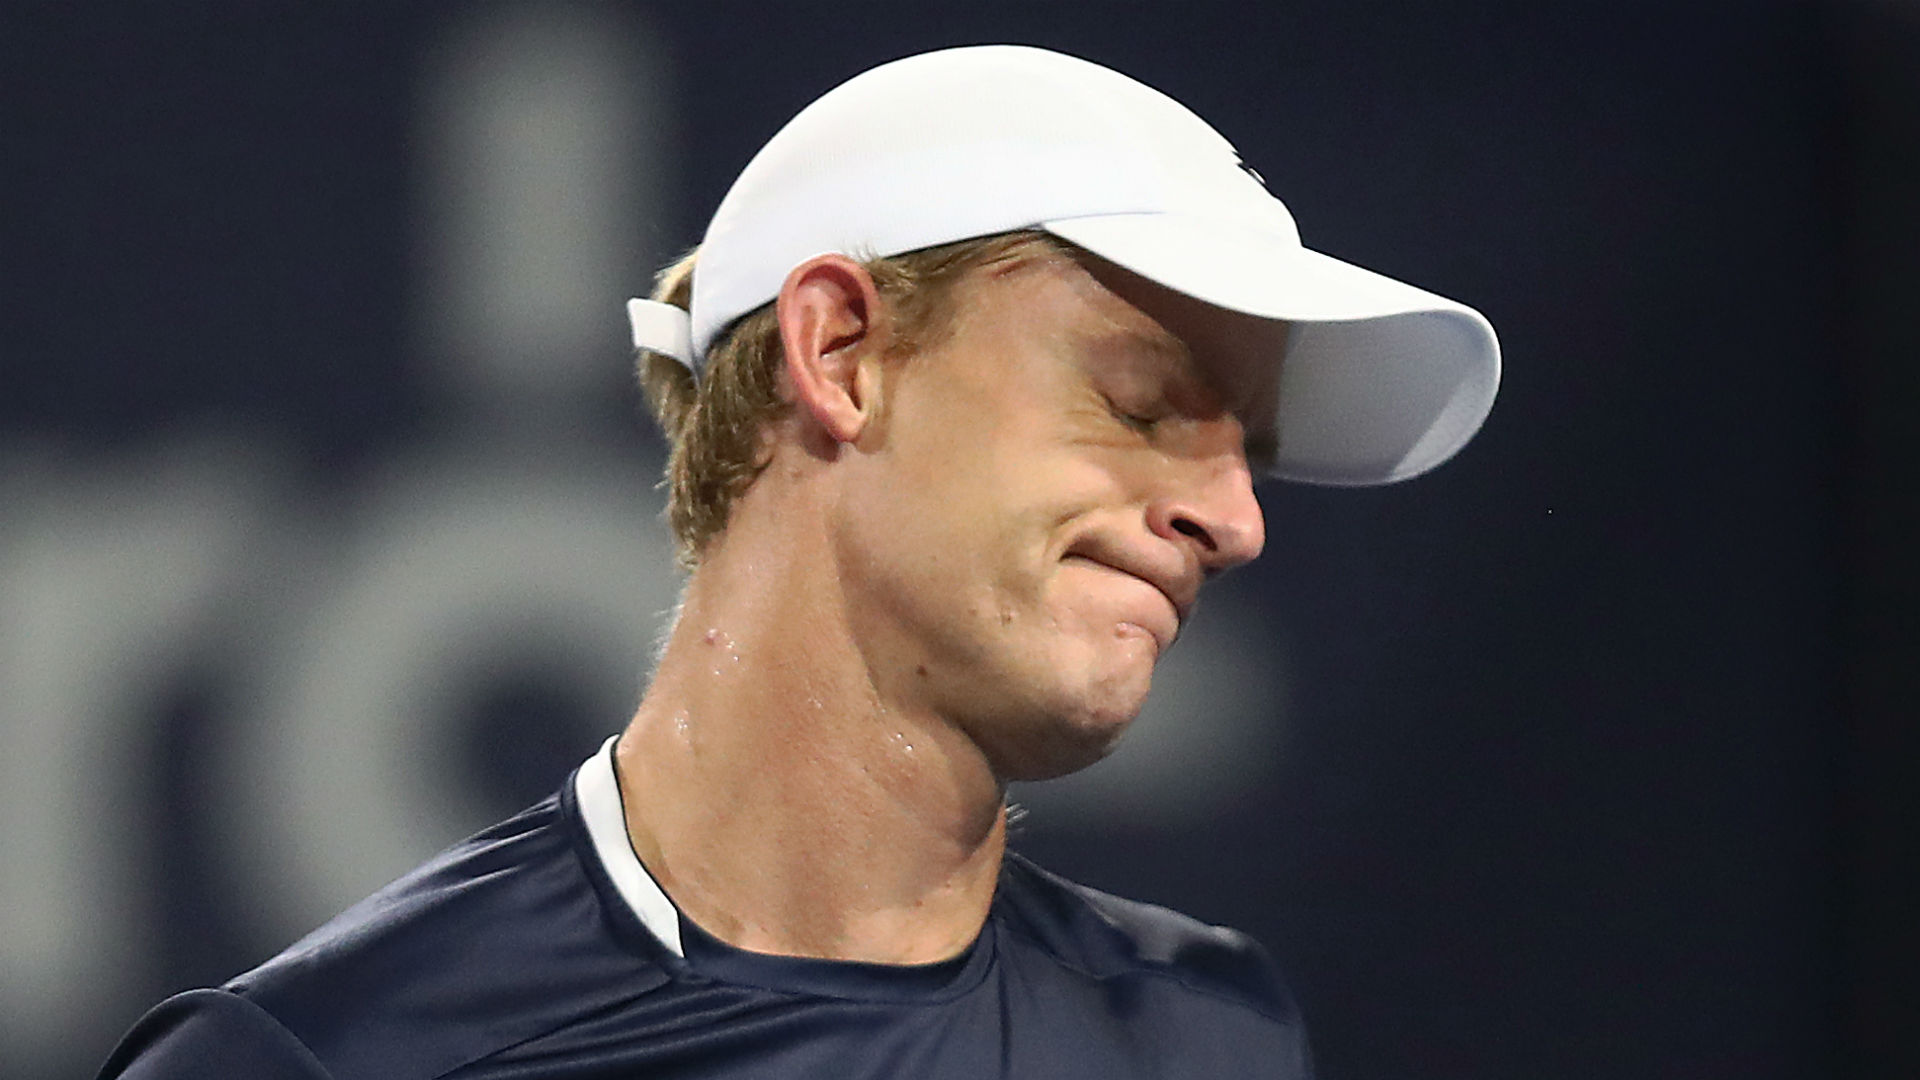 Knee injury rules Kevin Anderson out of US Open